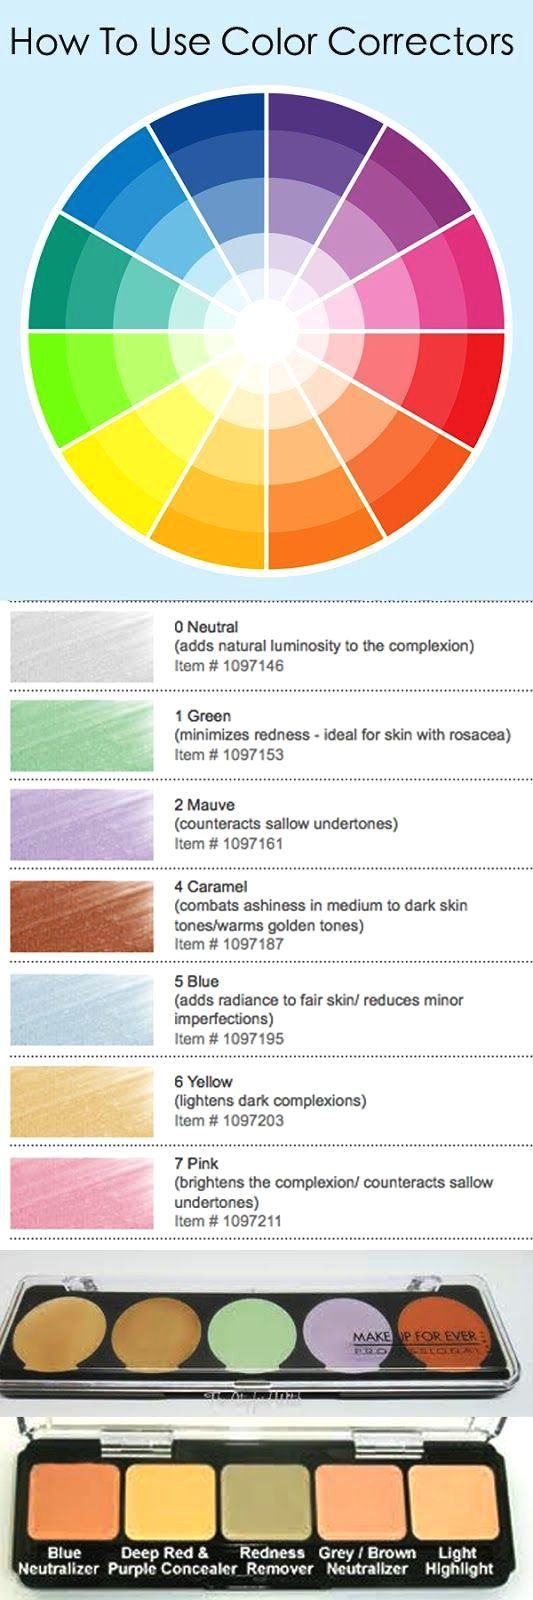 Color Corrector Guide                                                                                                                            More